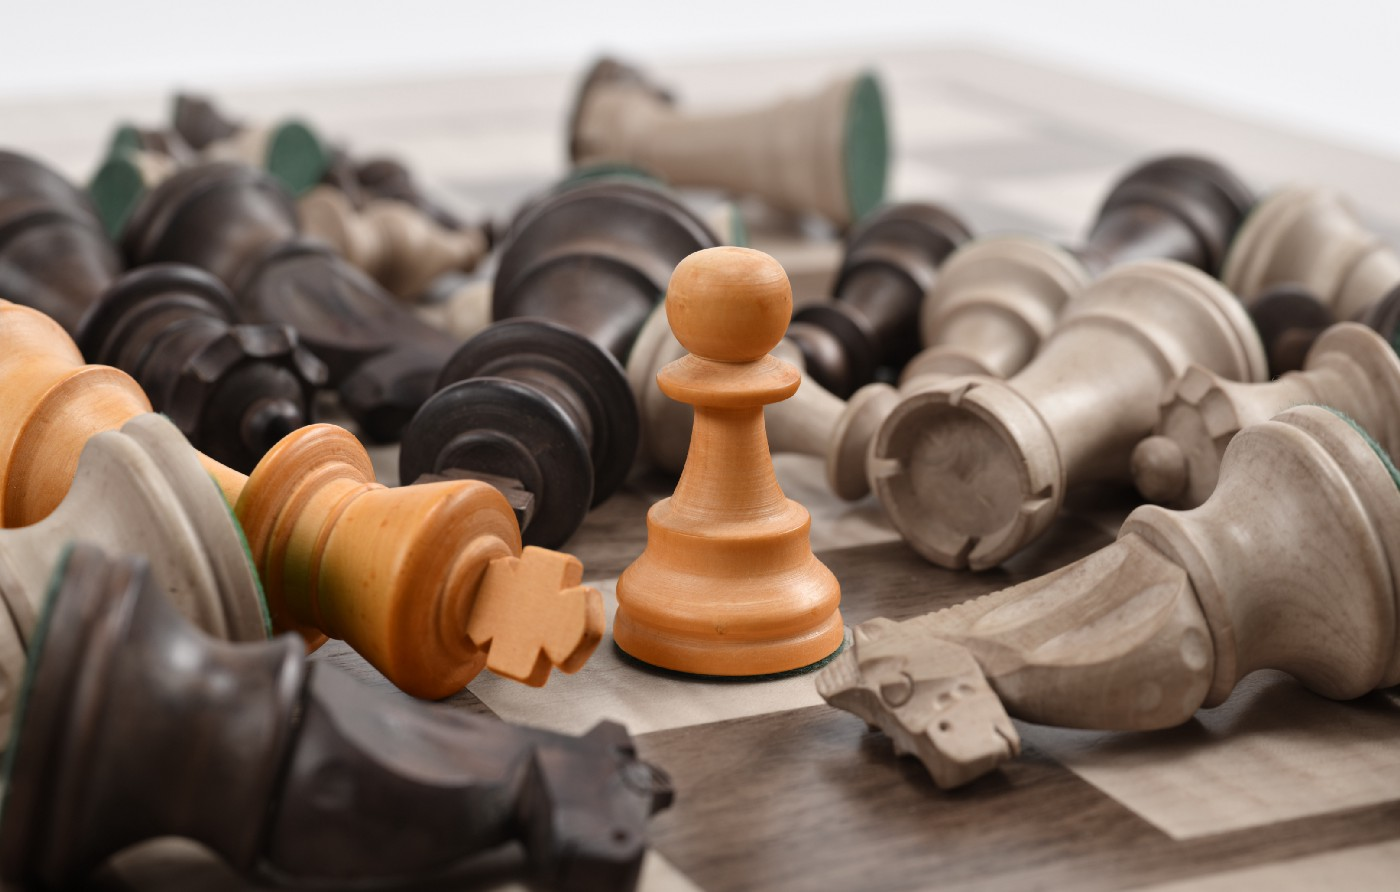 Chess board with a white pawn in focus